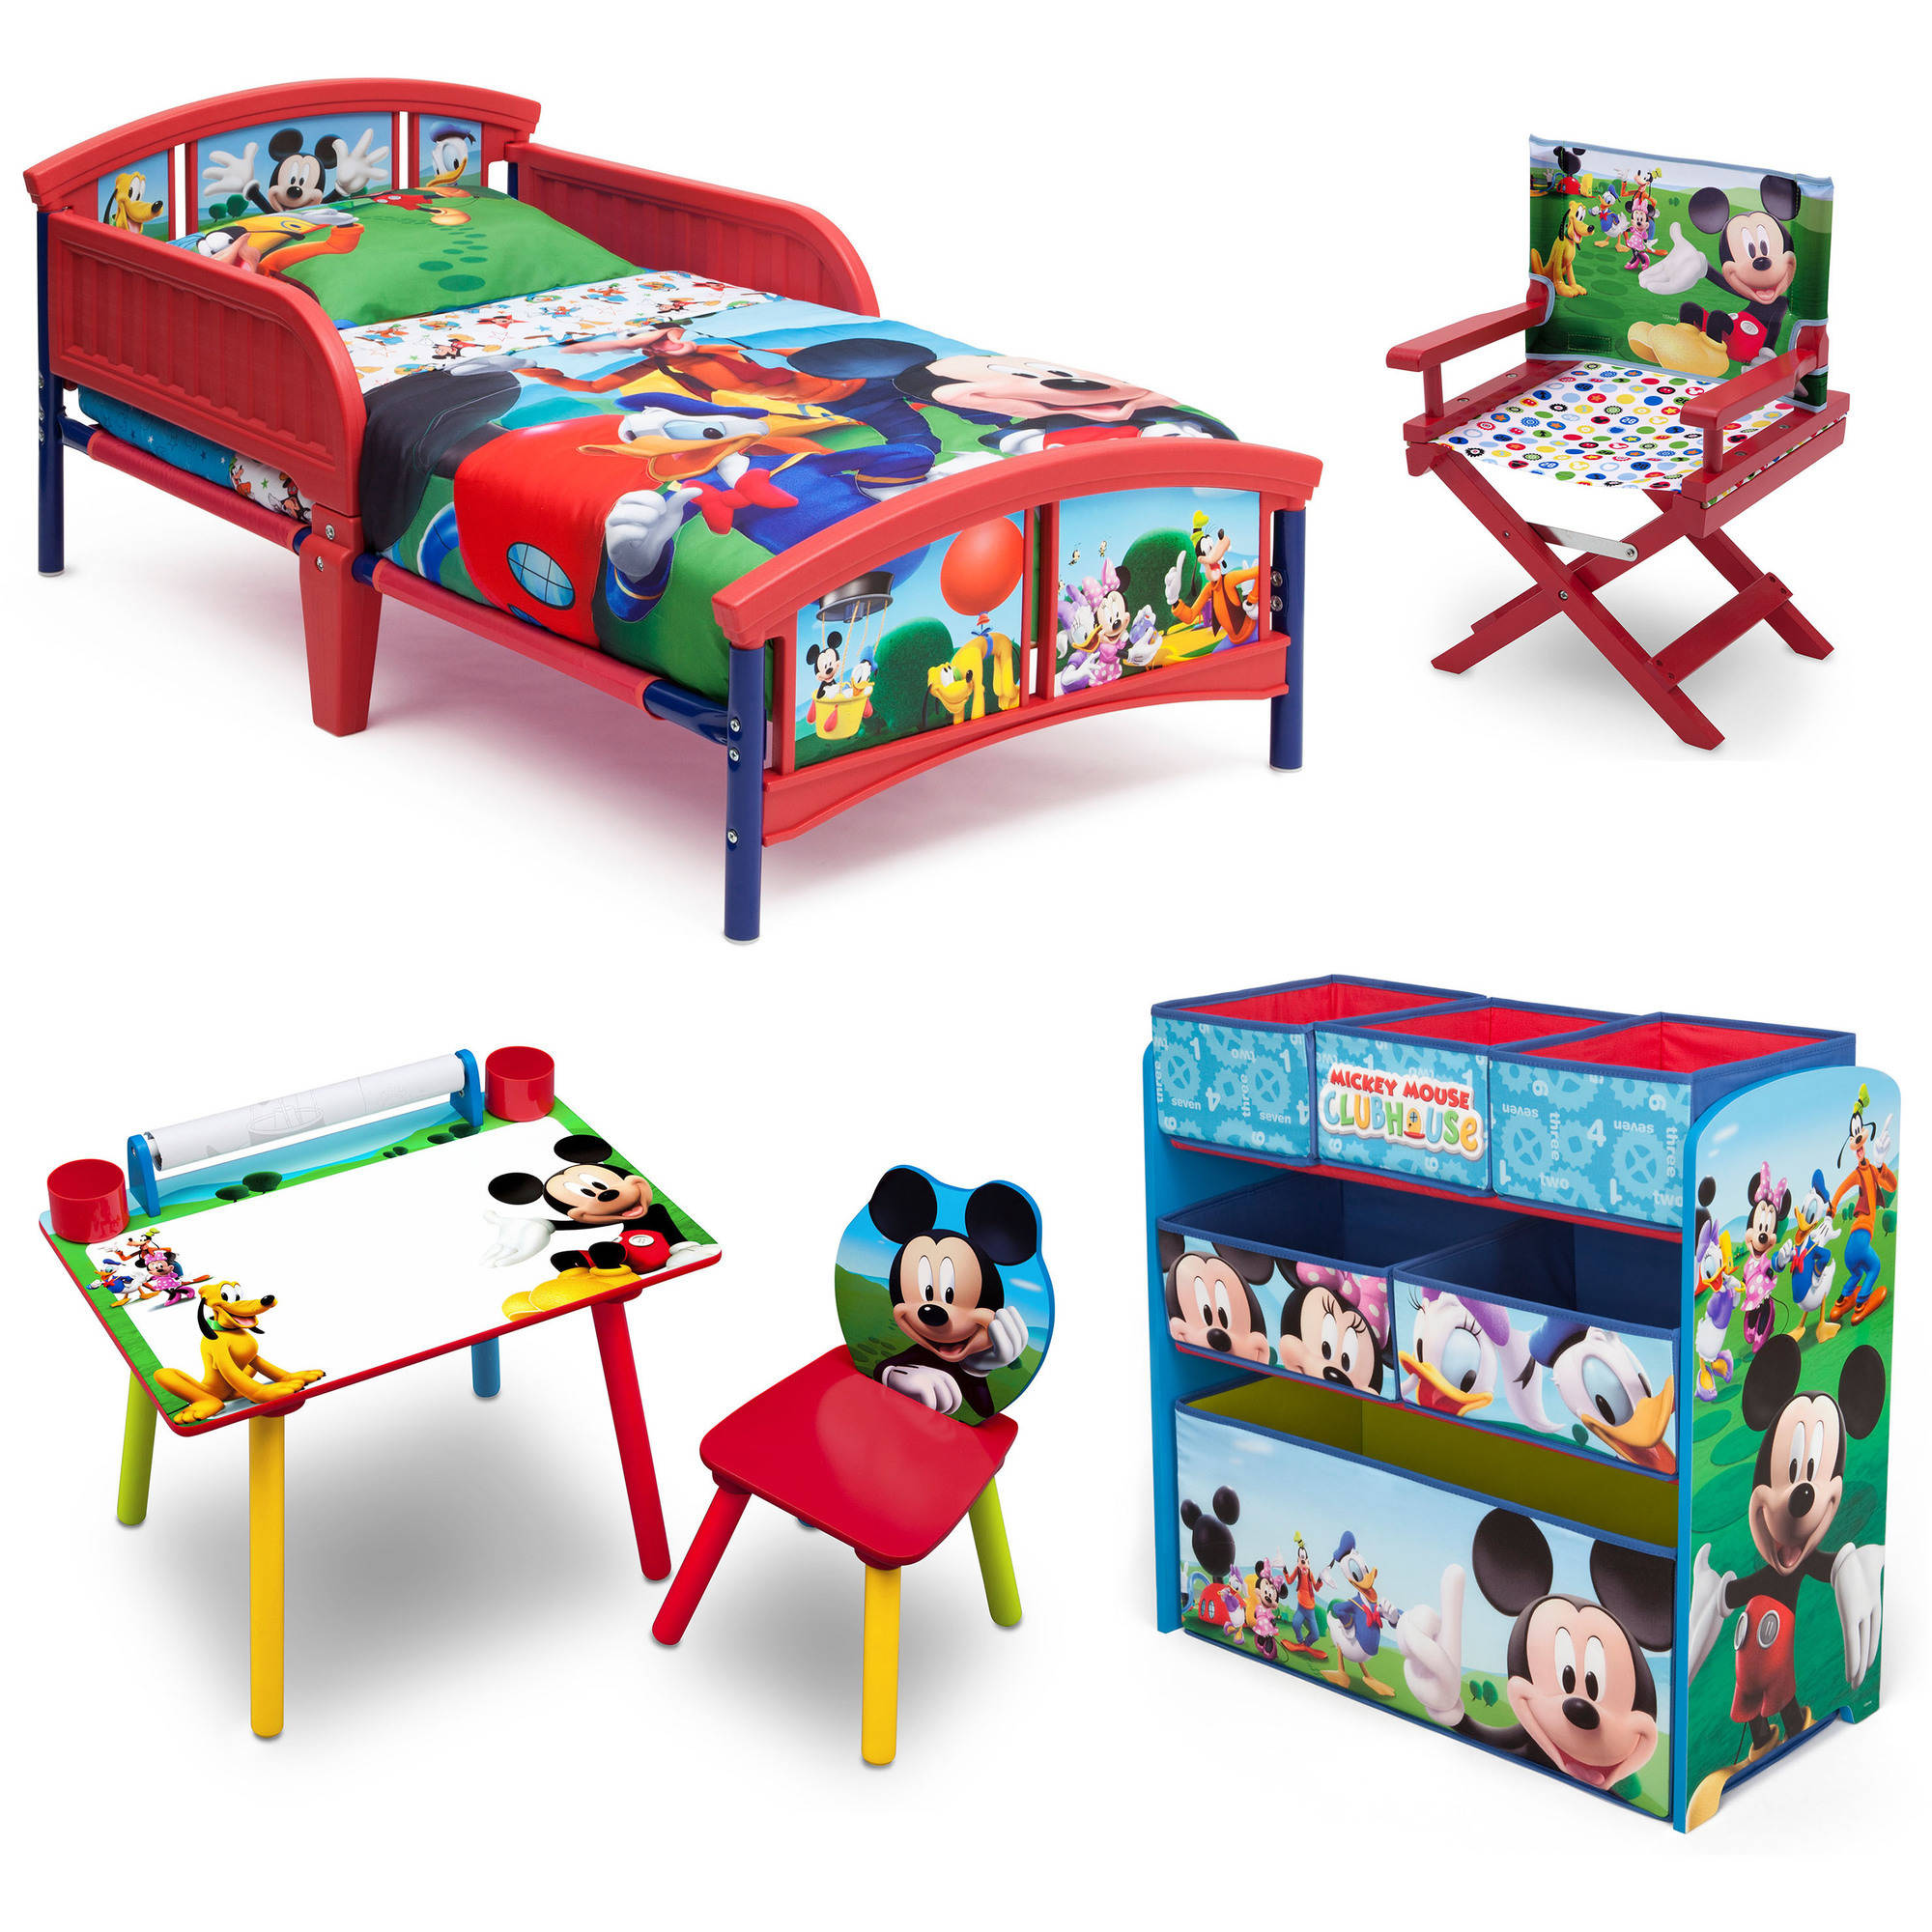 Disney Mickey Mouse Room-in-a-Box with Bonus Chair